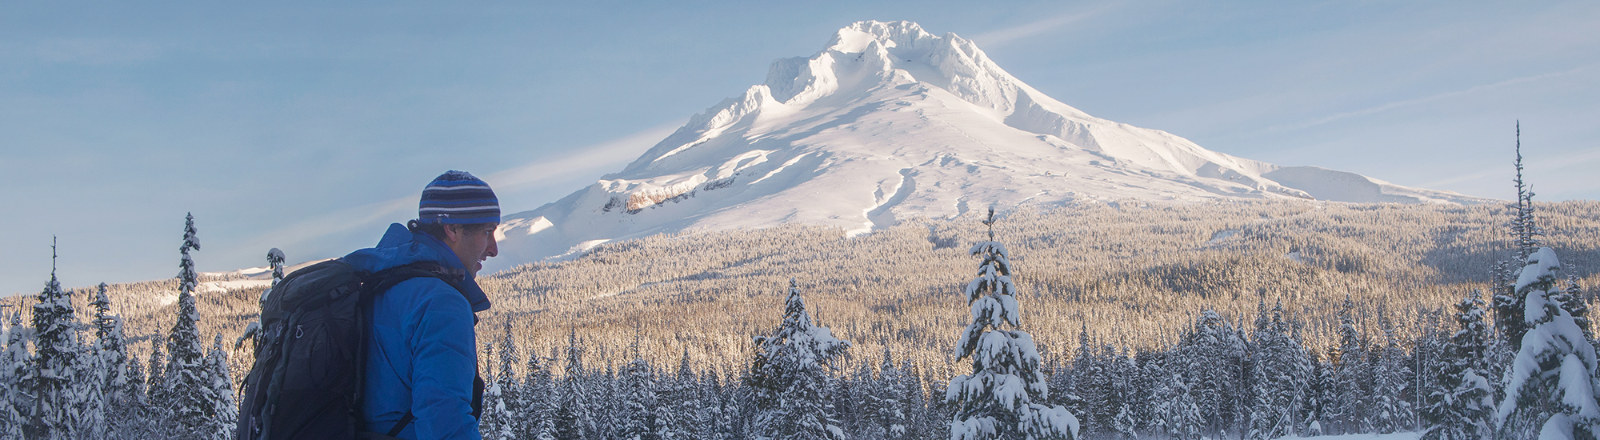 Mt. Hood in all its white glory is viewed by a snowshoer with a large backpack crossing a forest meadow near Trillium Lake